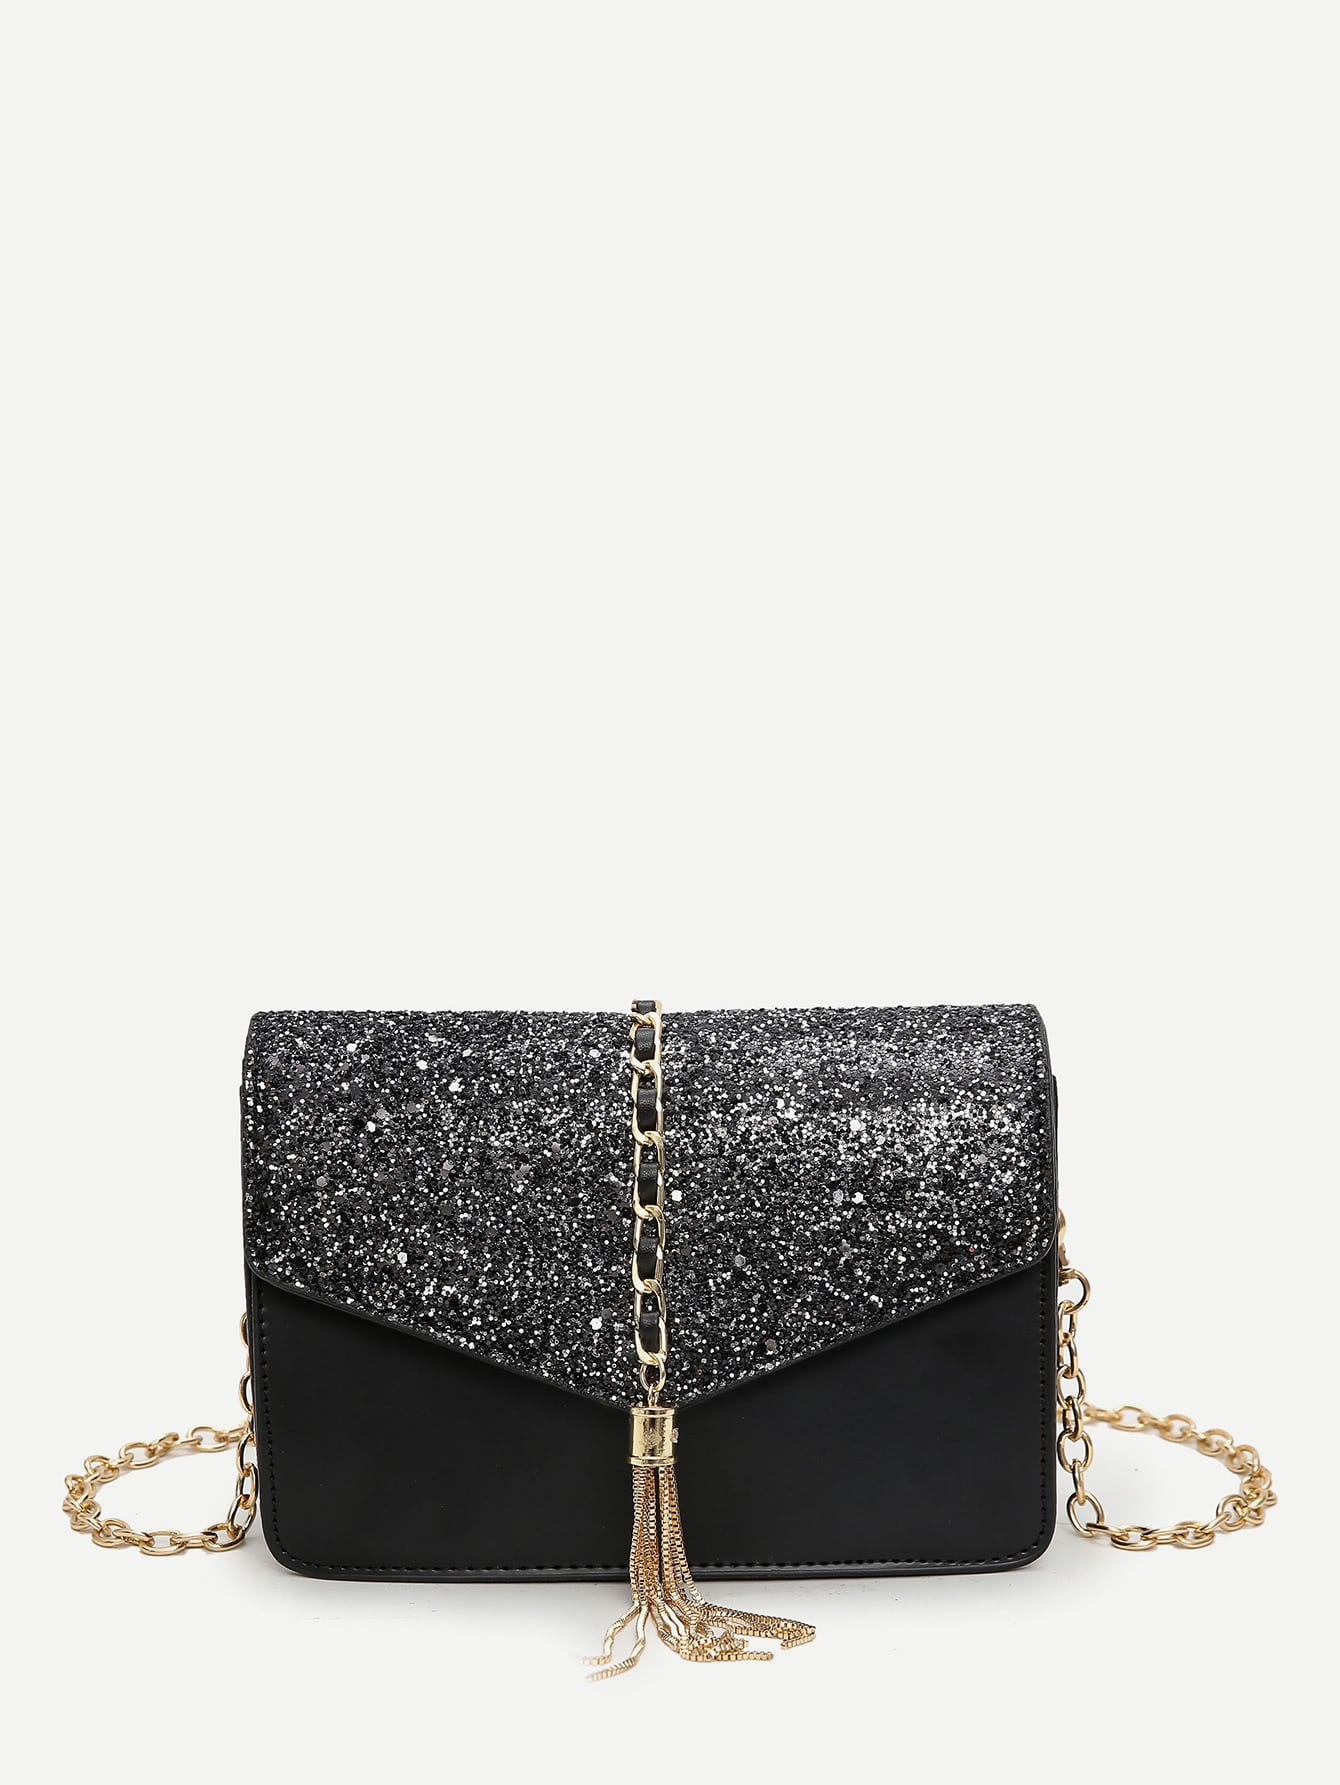 Tassel Decor Glitter Chain Bag бензобак на иж 27175